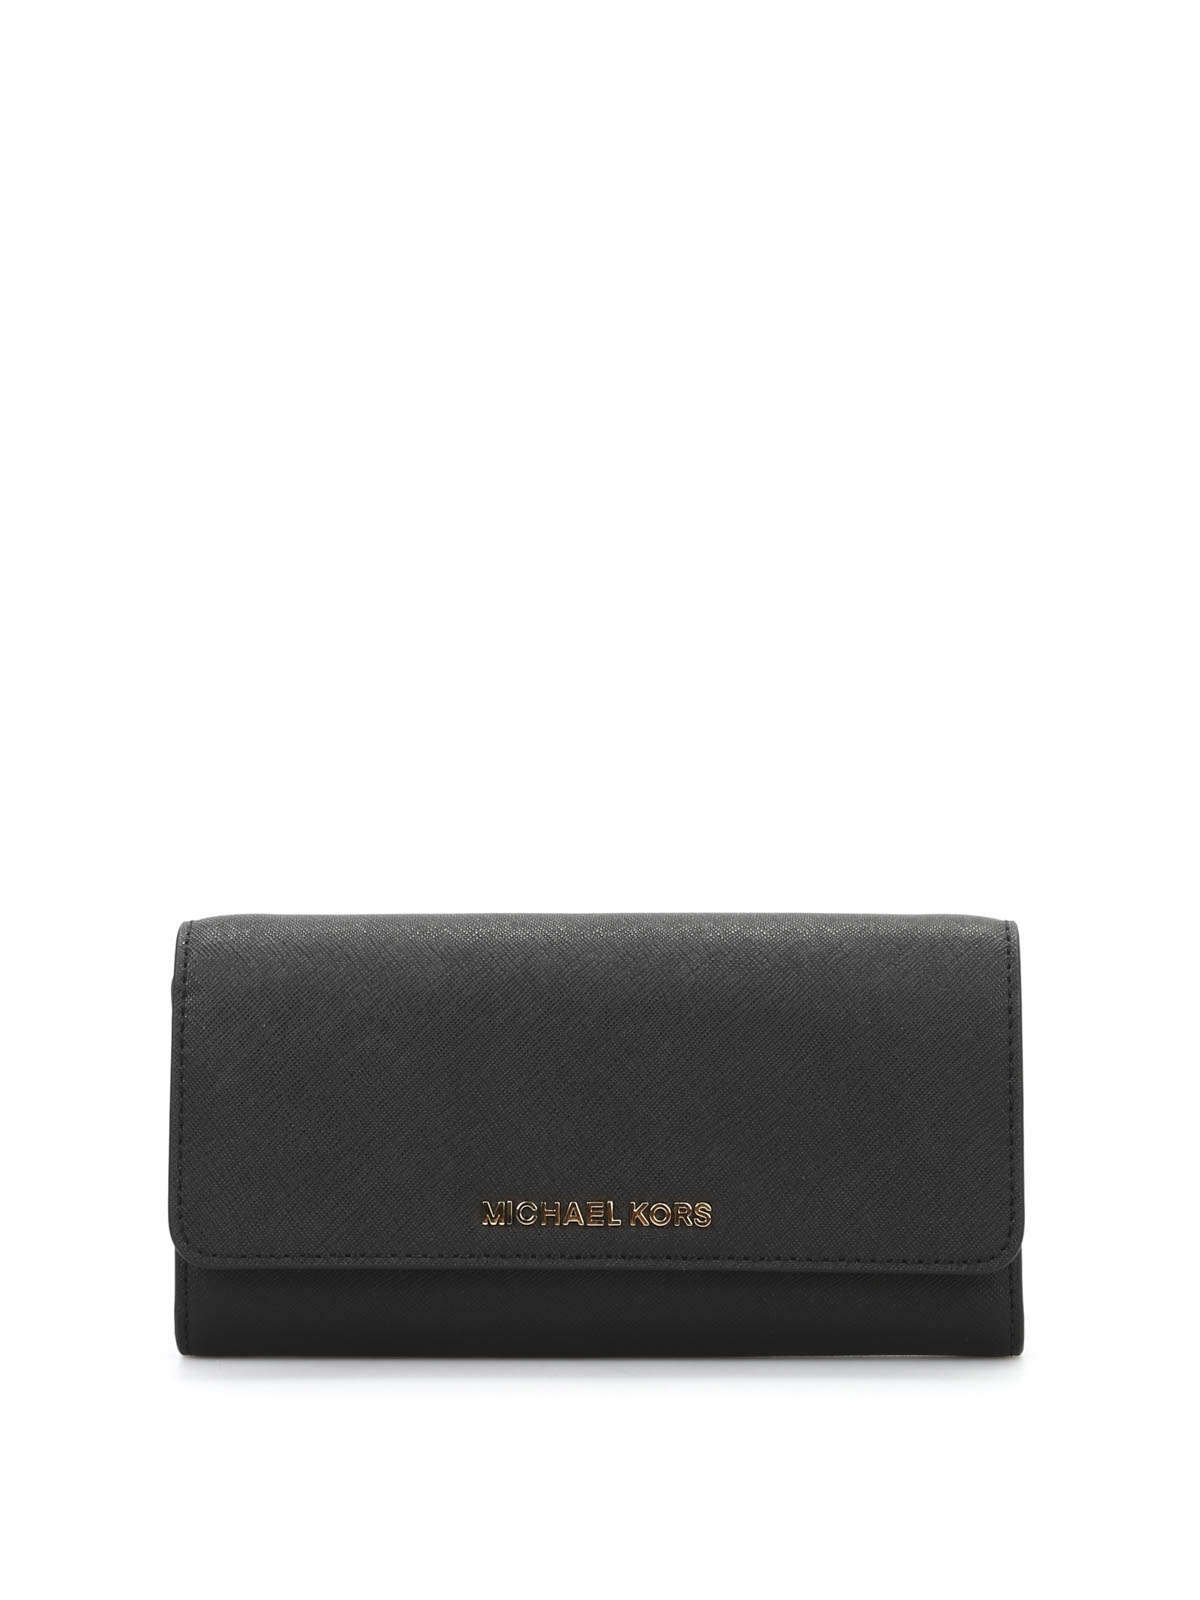 jet set travel leather clutch by michael kors clutches. Black Bedroom Furniture Sets. Home Design Ideas